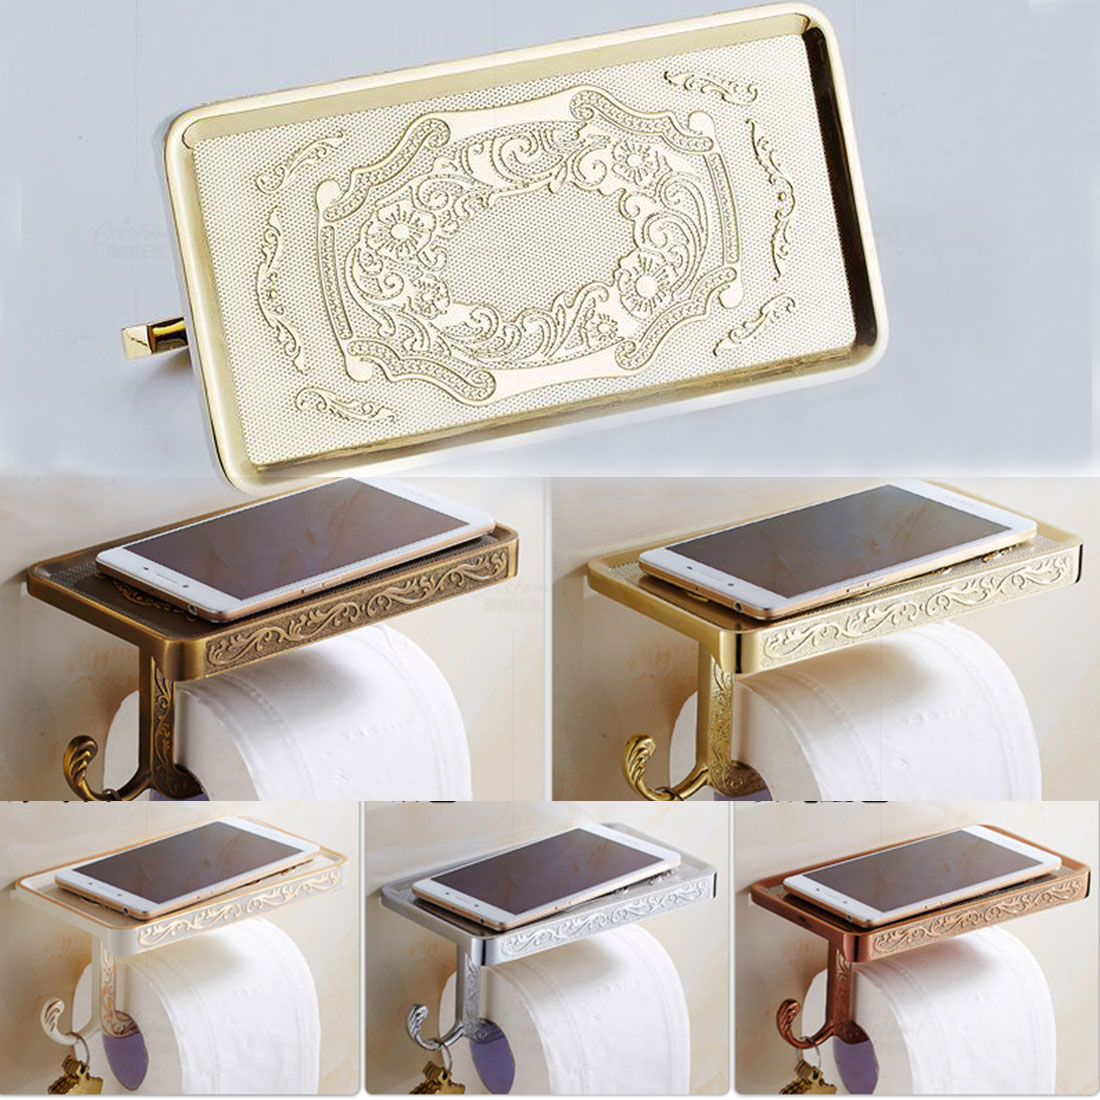 1pcs Newly Toilet Paper Holder Antique Carving Mobile Phone Roll Paper Holder Wall Mounted Paper Rack for Phone